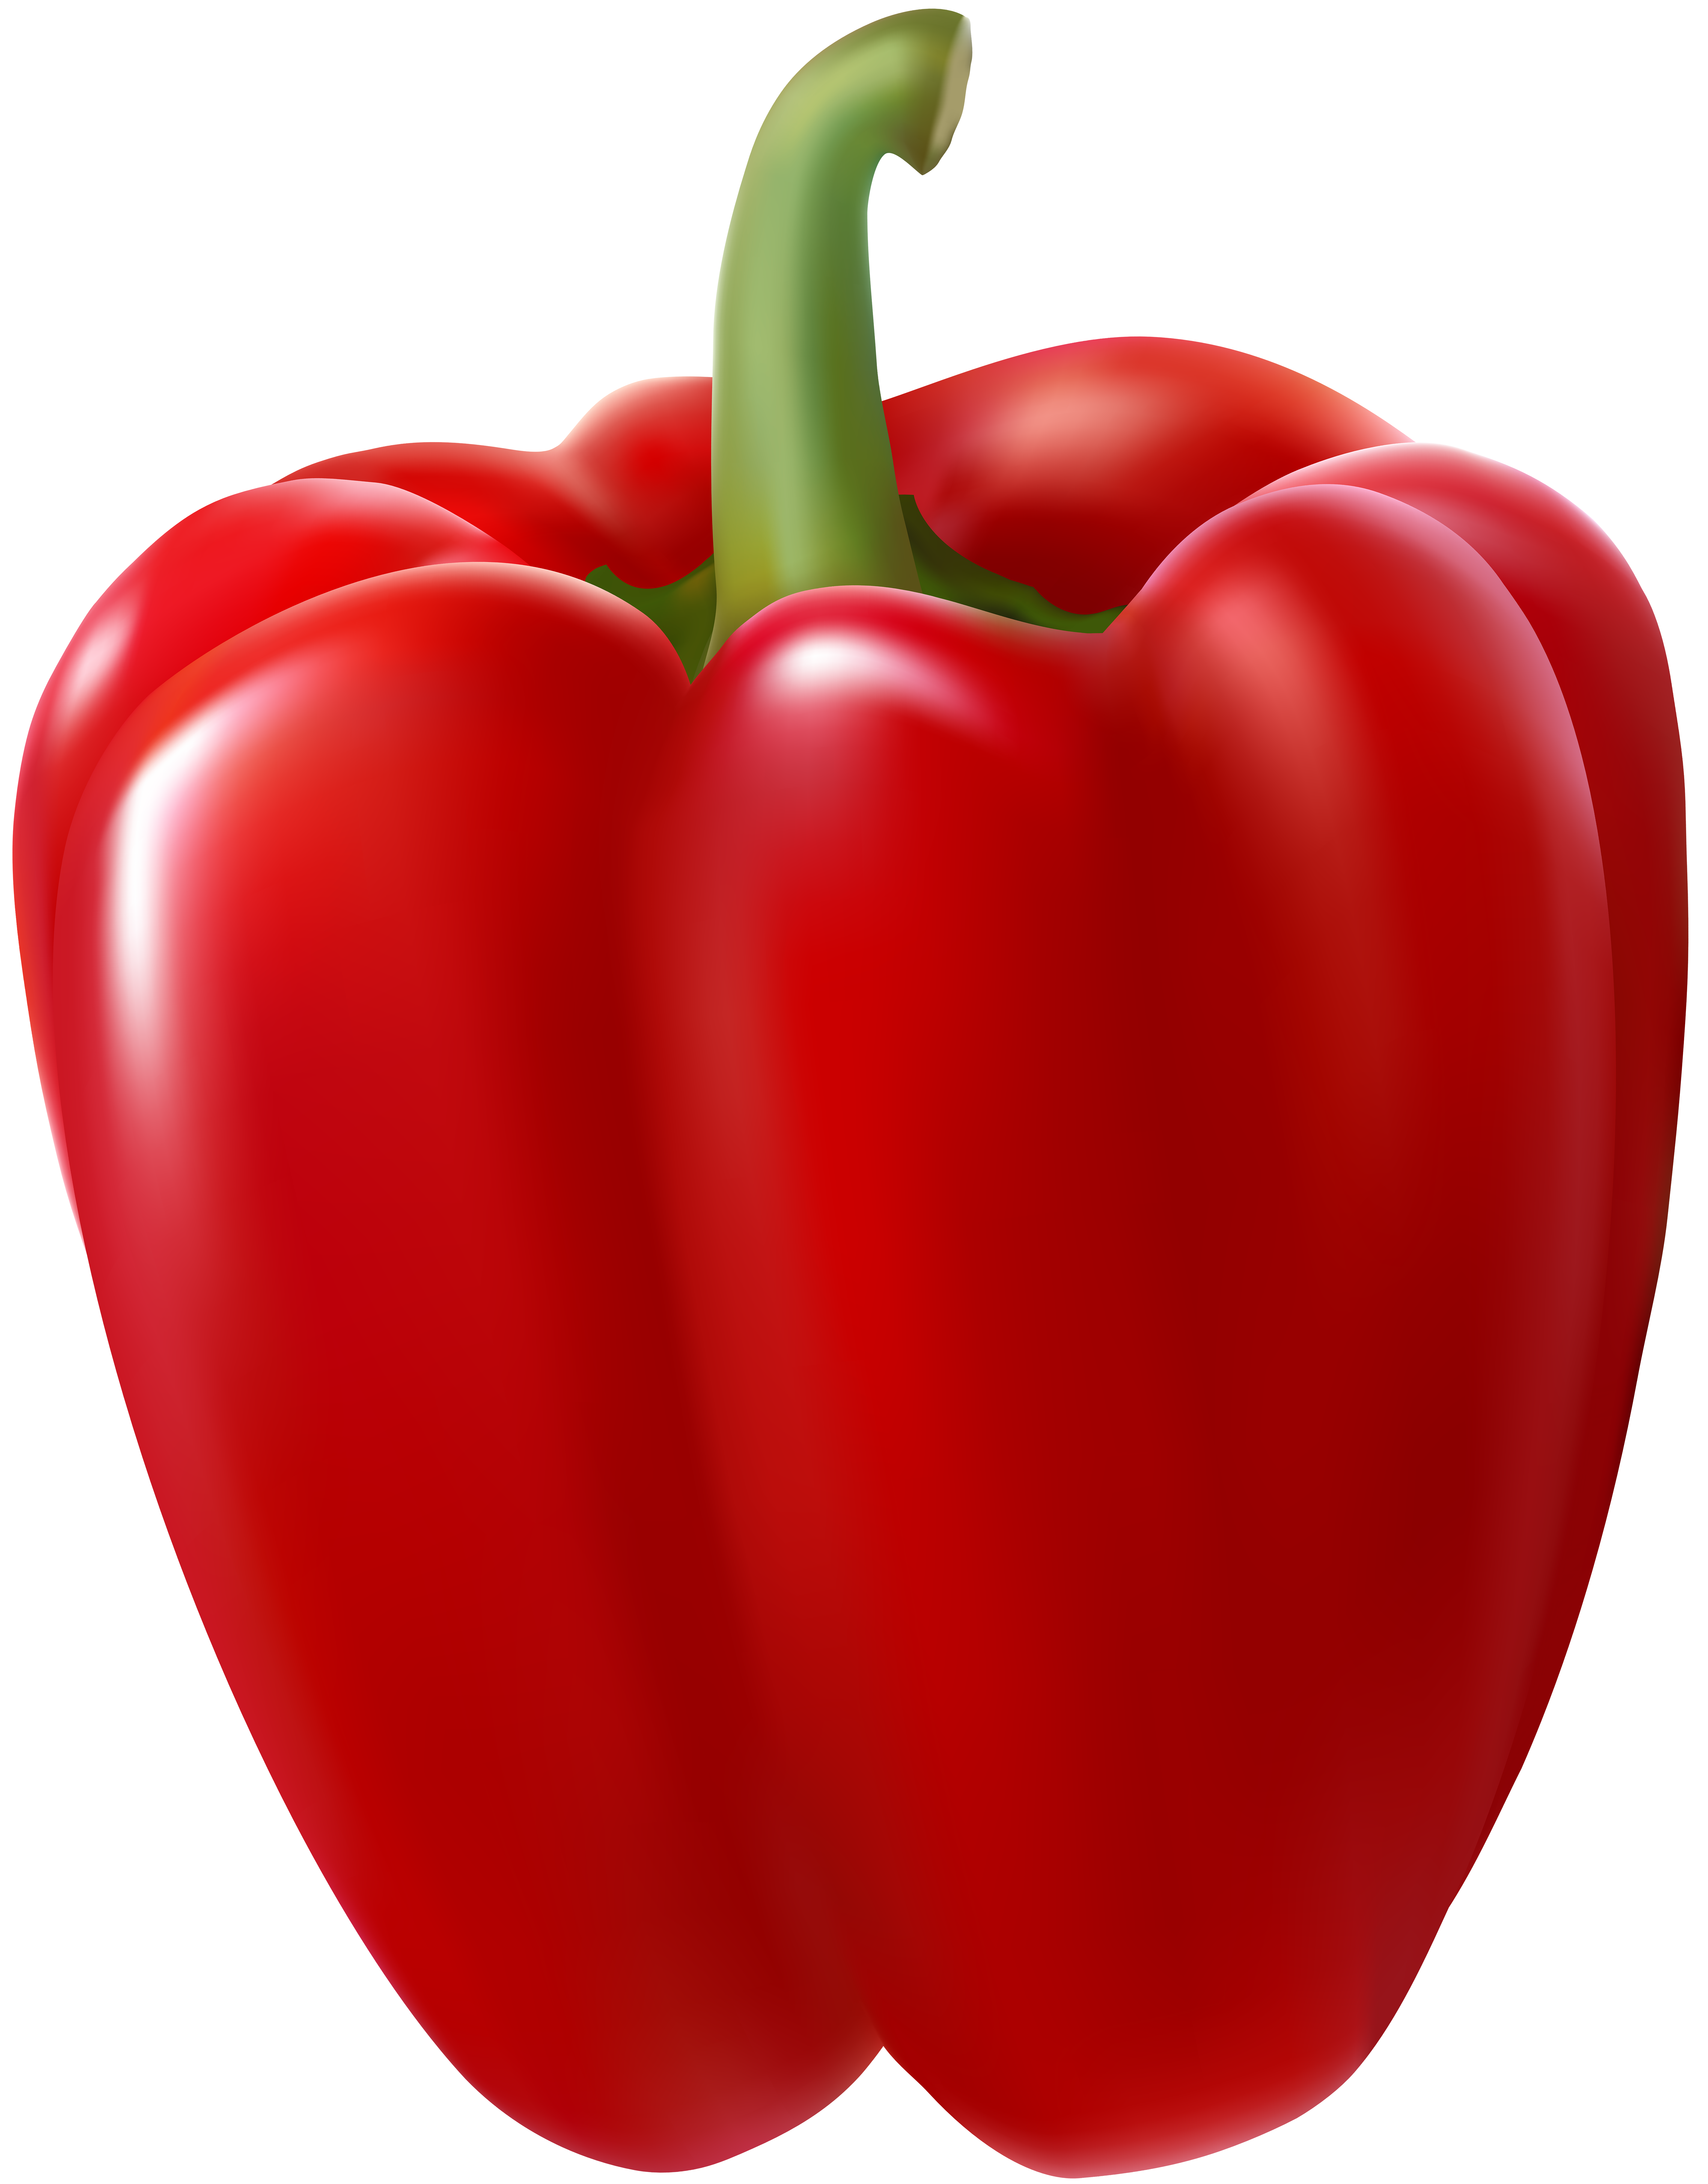 Peppers clipart transparent. Red bell pepper clip